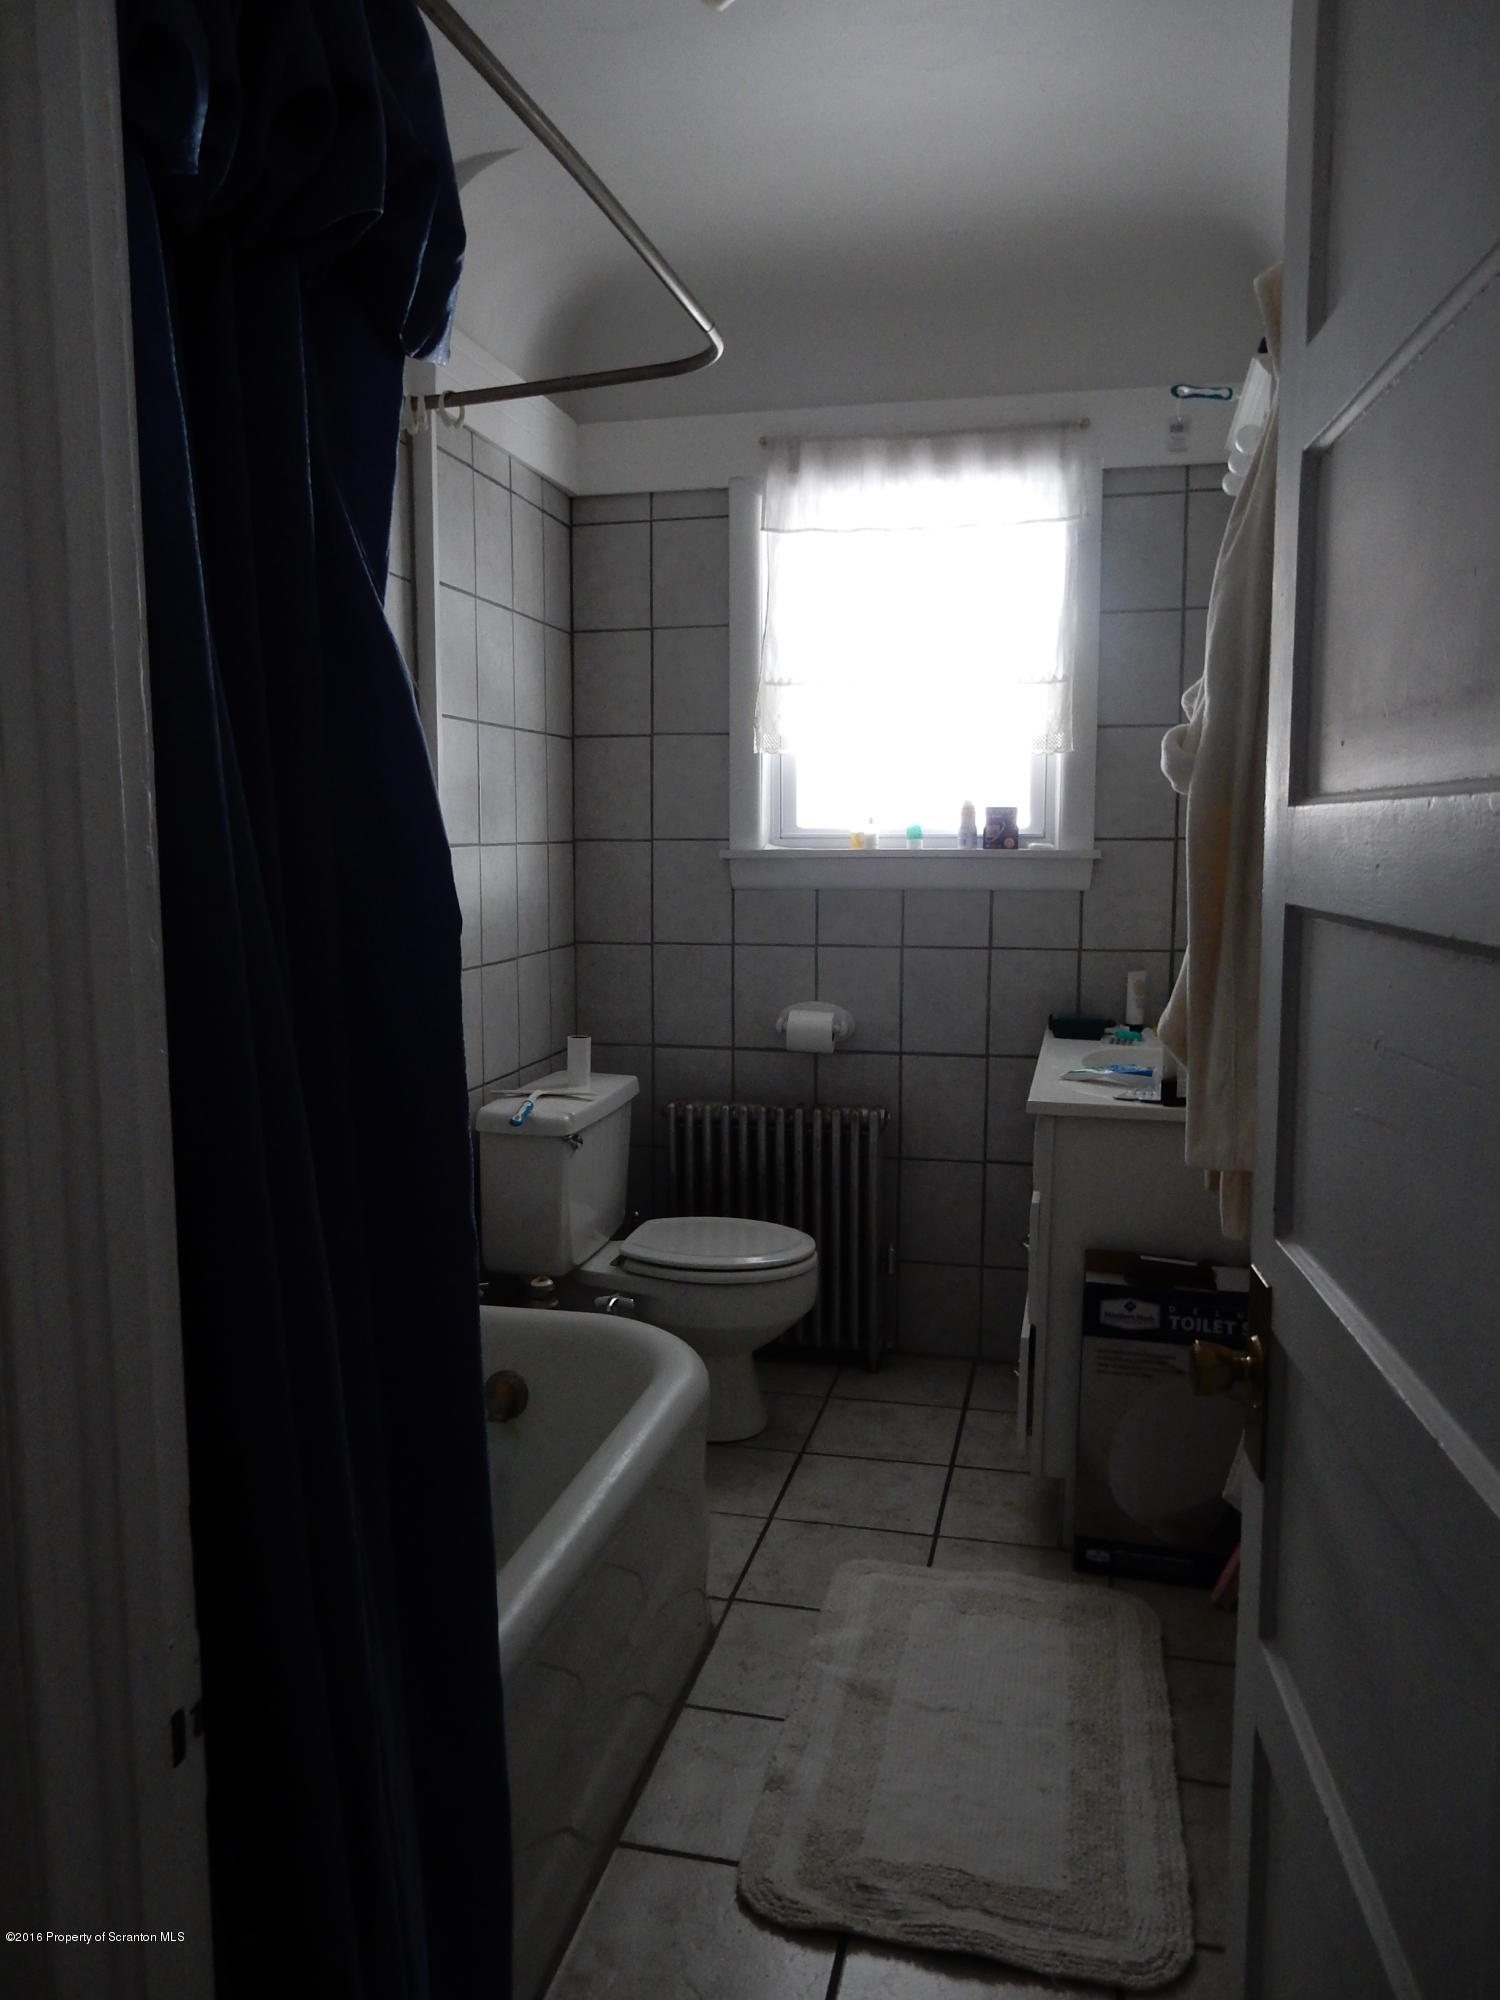 534 Drinker Street, Dunmore, Pennsylvania 18512, ,2 BathroomsBathrooms,Commercial,For Sale,Drinker Street,16-1201